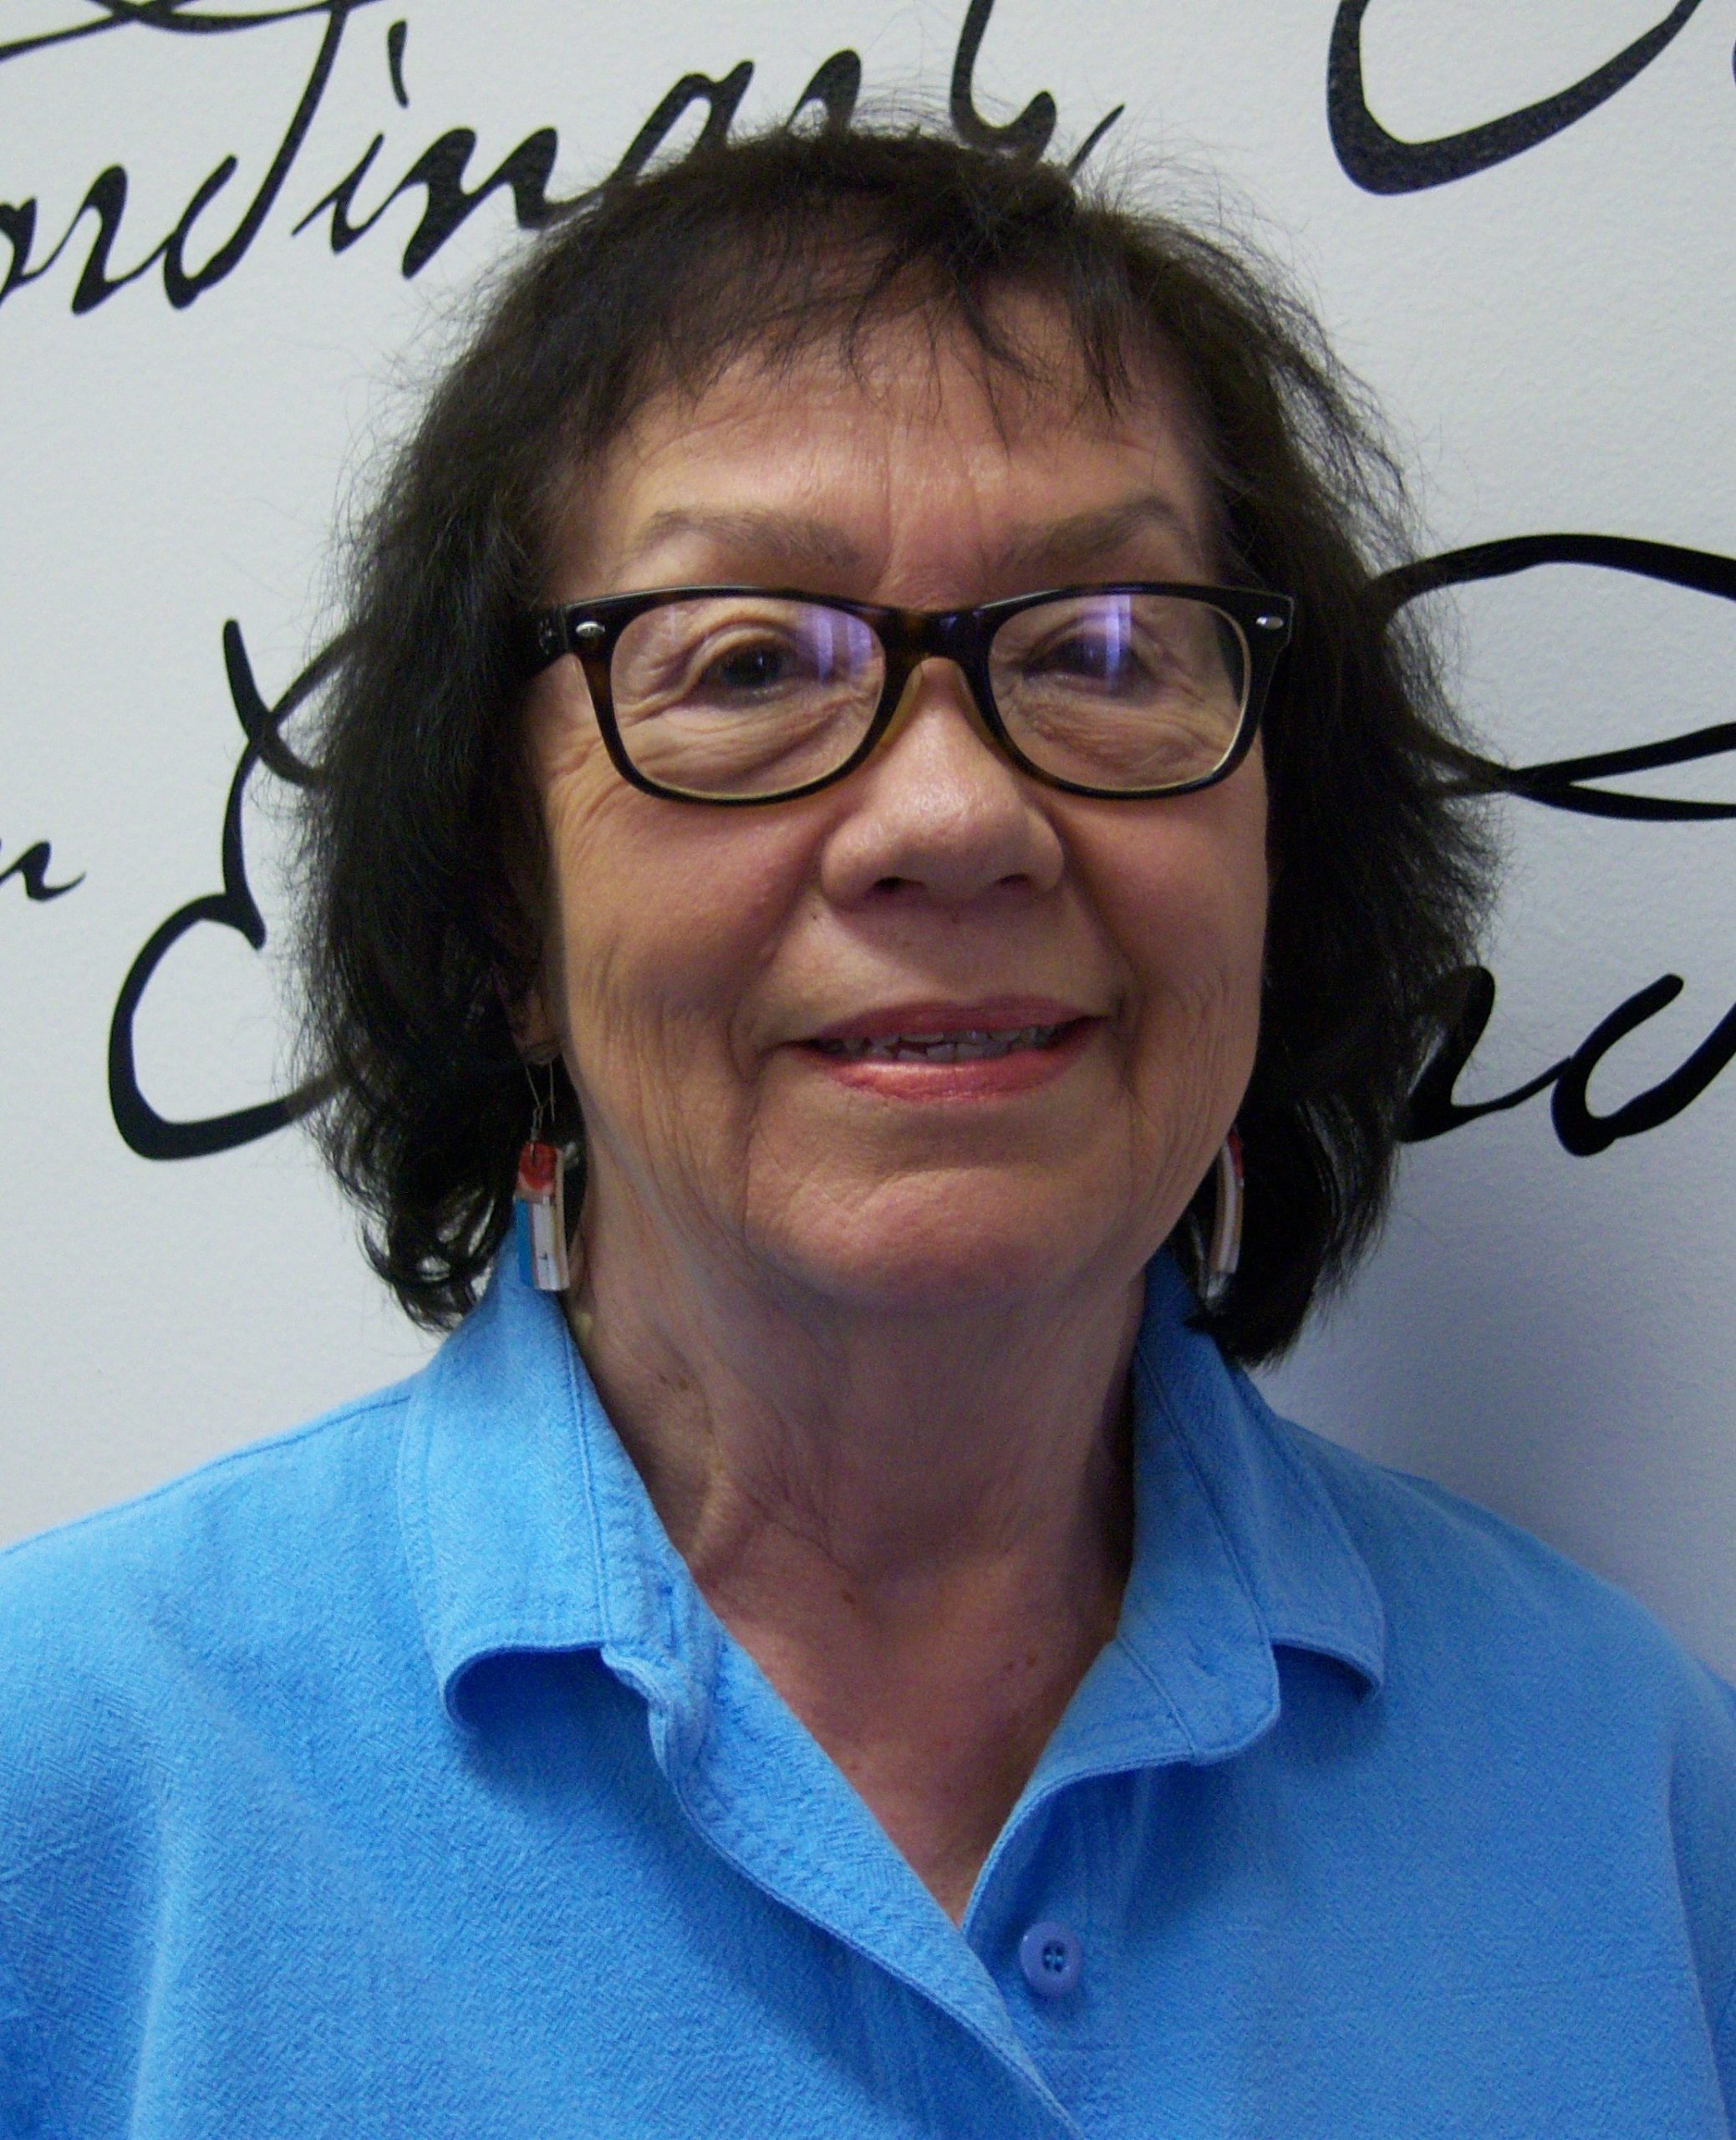 Nola Lodge, newly appointed director of American Indian Teacher Education (AITE) in the U of U College of Education.